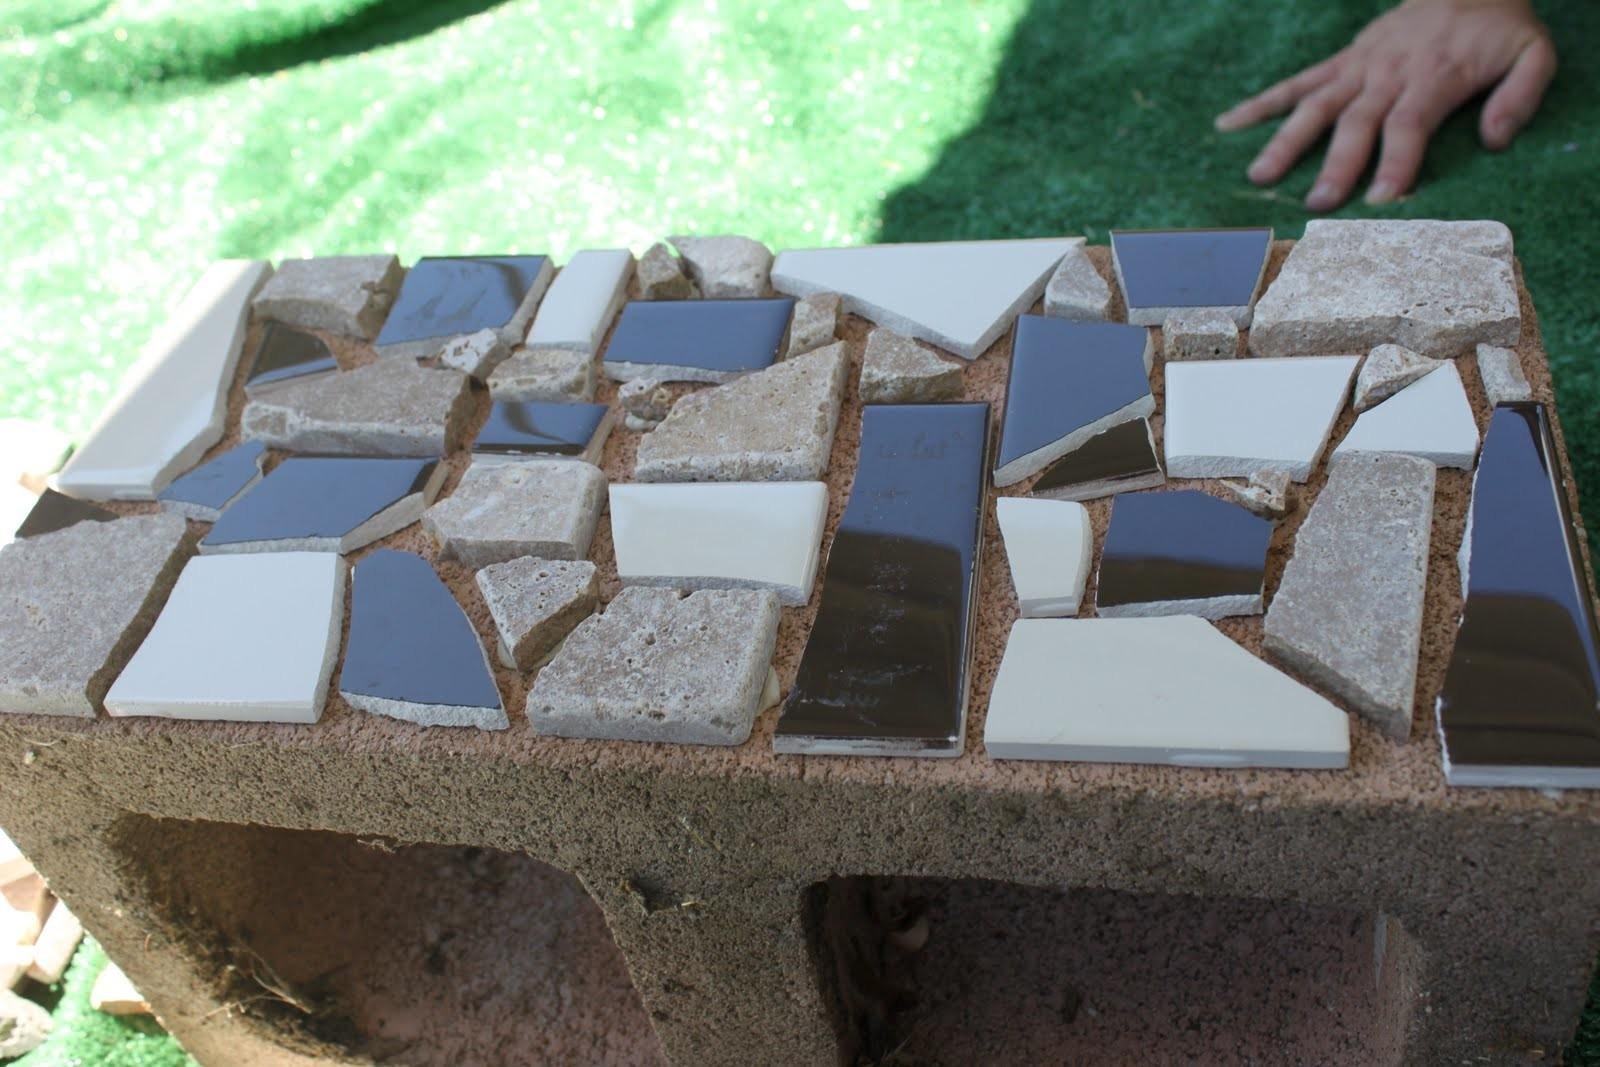 Mosaic Cinder Block Planter Part One Delicate Construction